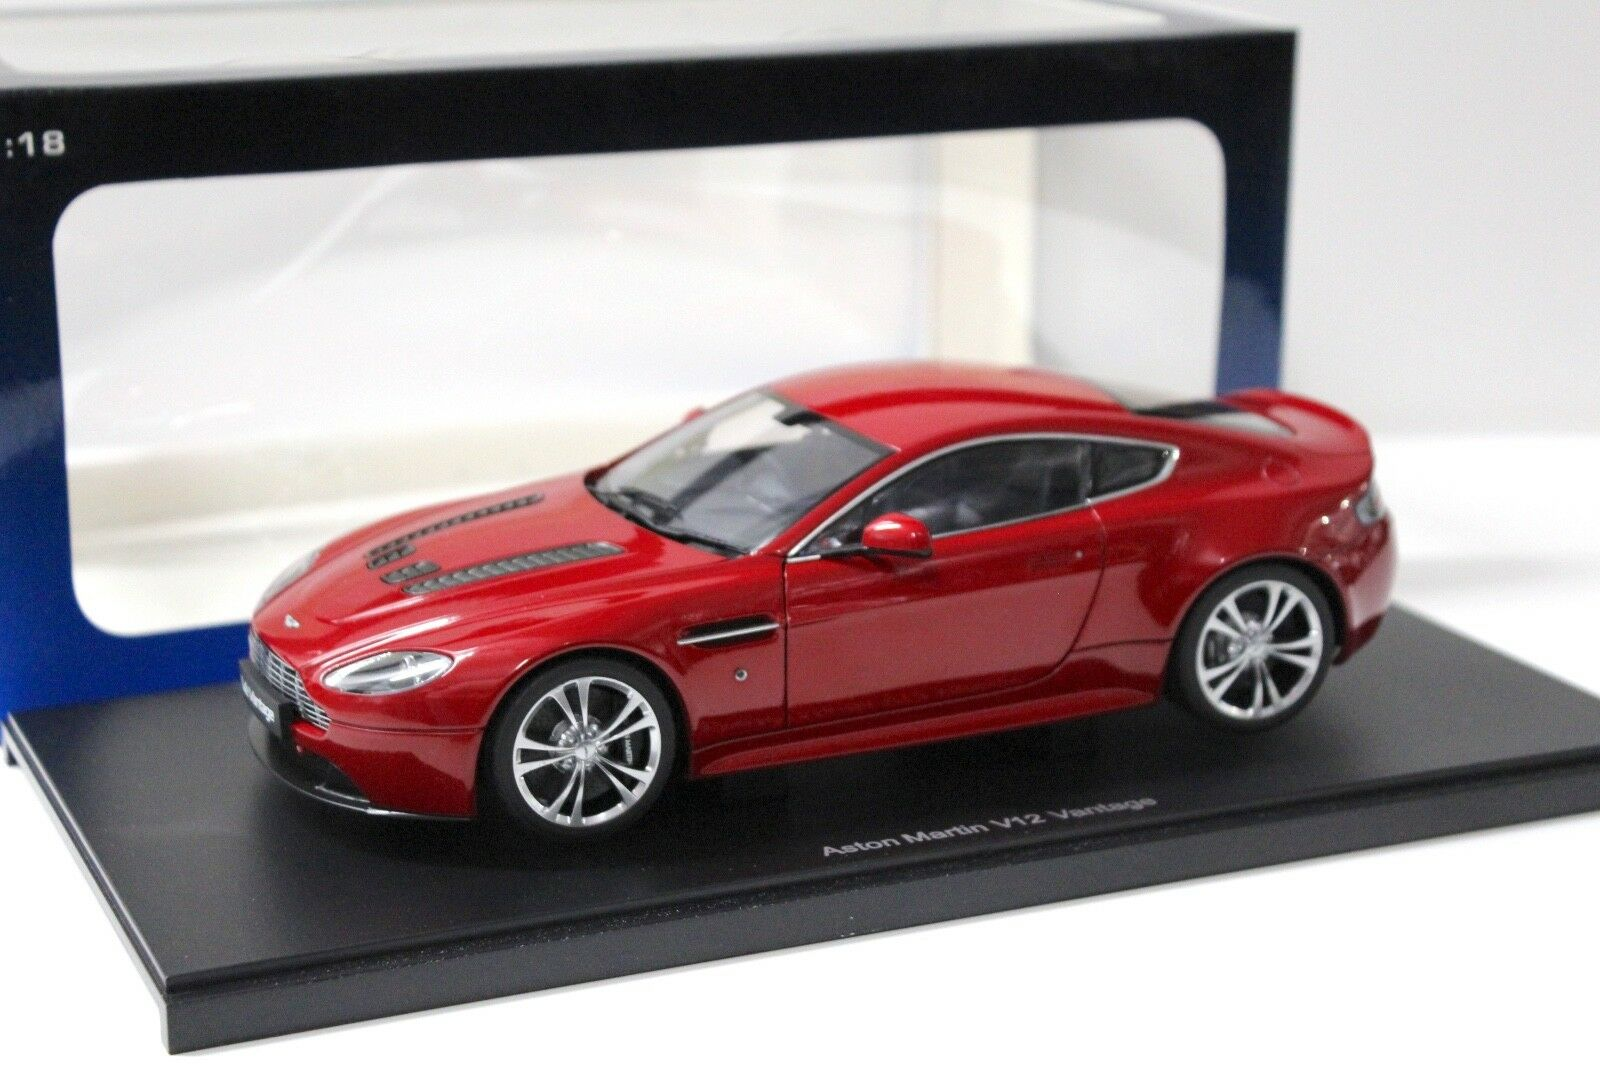 1:18 Autoart ASTON MARTIN VANTAGE v12 COUPE RED NEW in Premium-MODELCARS